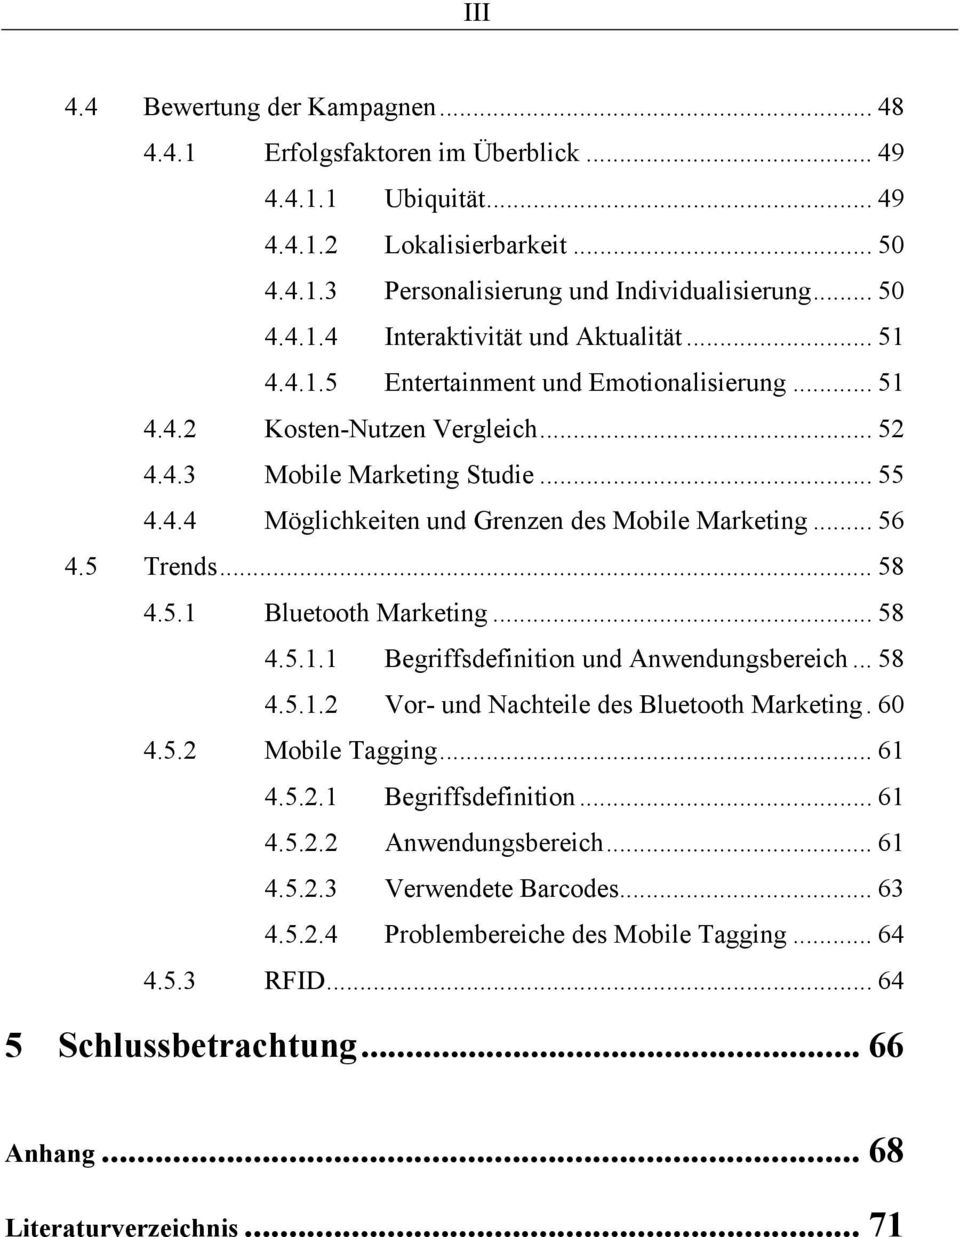 .. 58 4.5.1 Bluetooth Marketing... 58 4.5.1.1 Begriffsdefinition und Anwendungsbereich... 58 4.5.1.2 Vor- und Nachteile des Bluetooth Marketing. 60 4.5.2 Mobile Tagging... 61 4.5.2.1 Begriffsdefinition... 61 4.5.2.2 Anwendungsbereich.